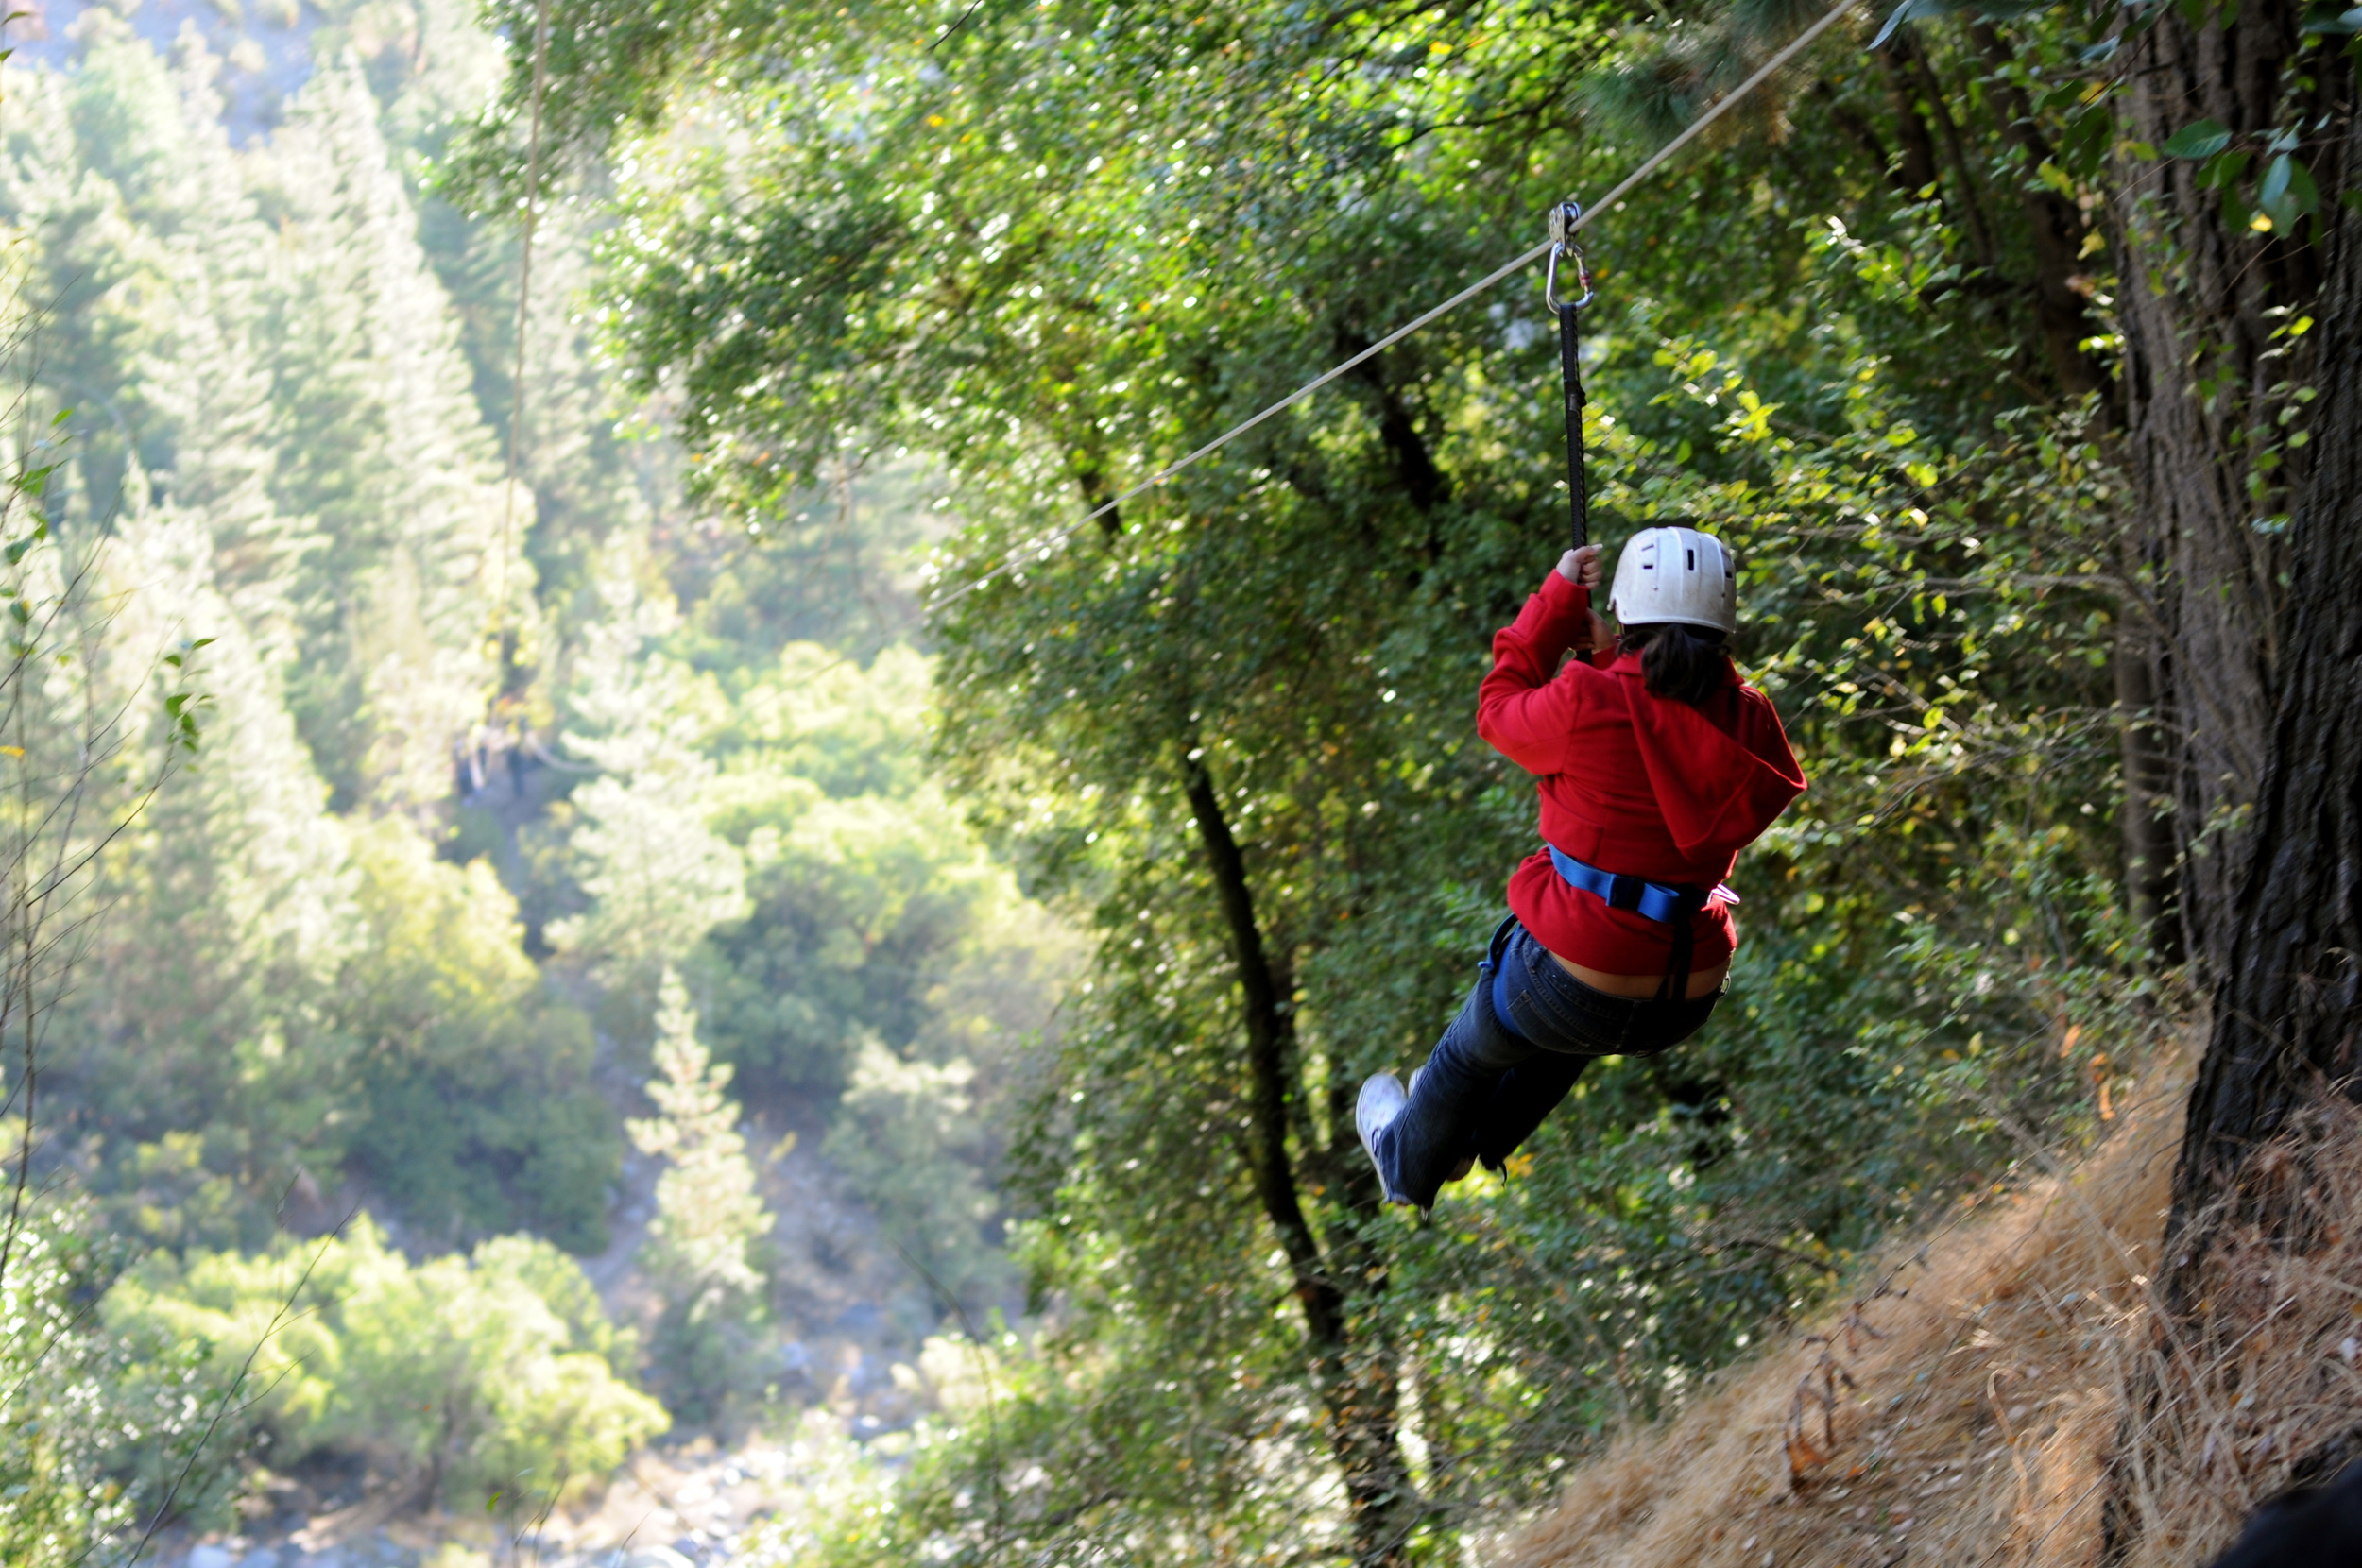 Ziplining Through the Andes